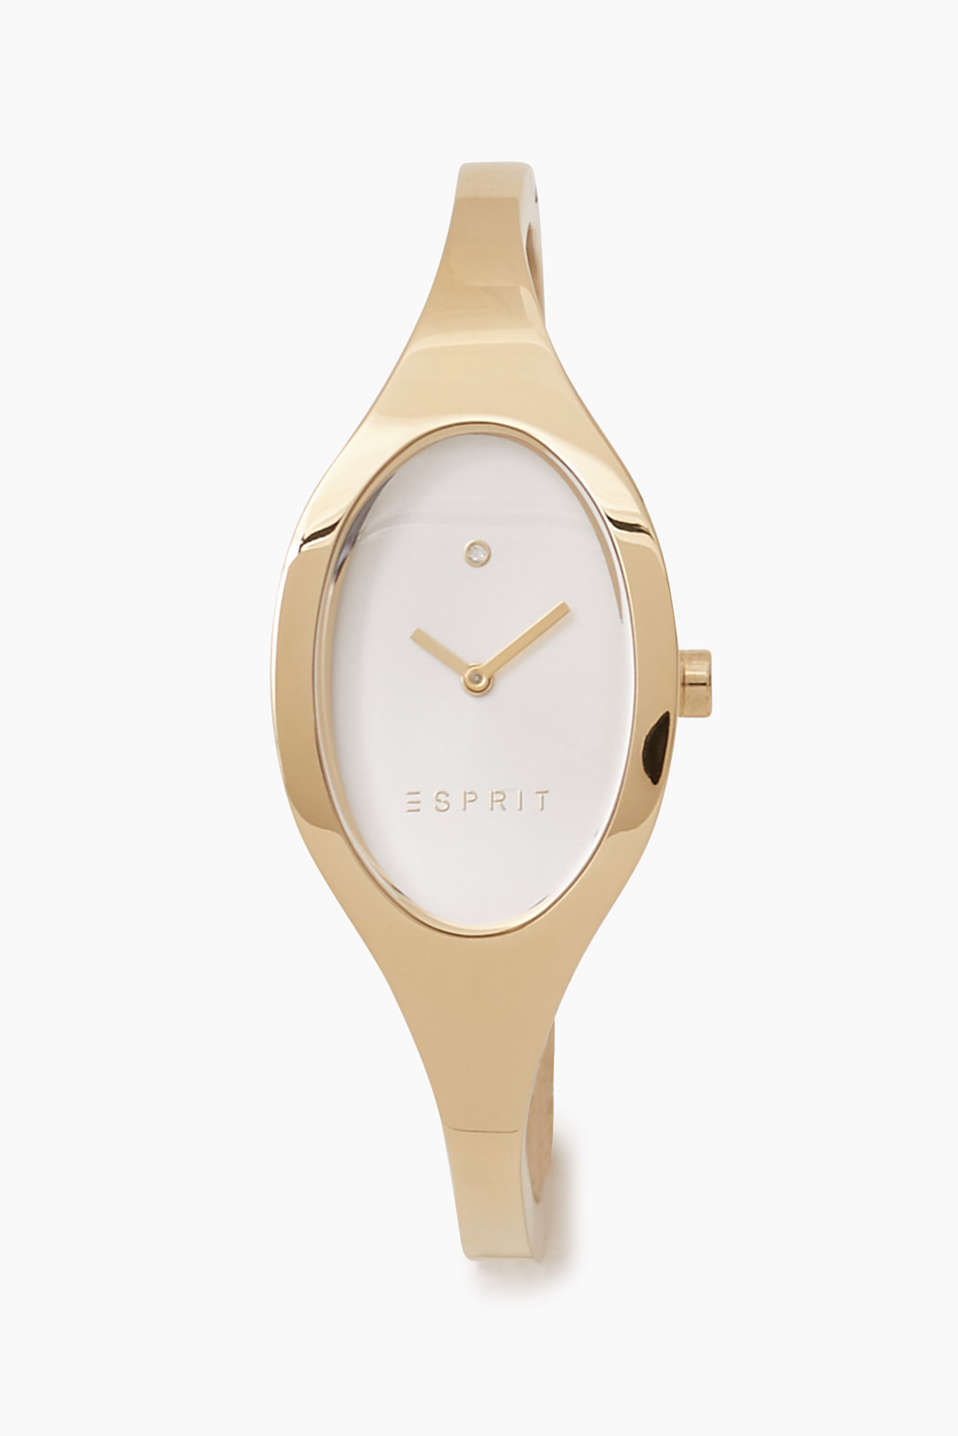 We love yellow gold: bangle-style bracelet watch with an oval face